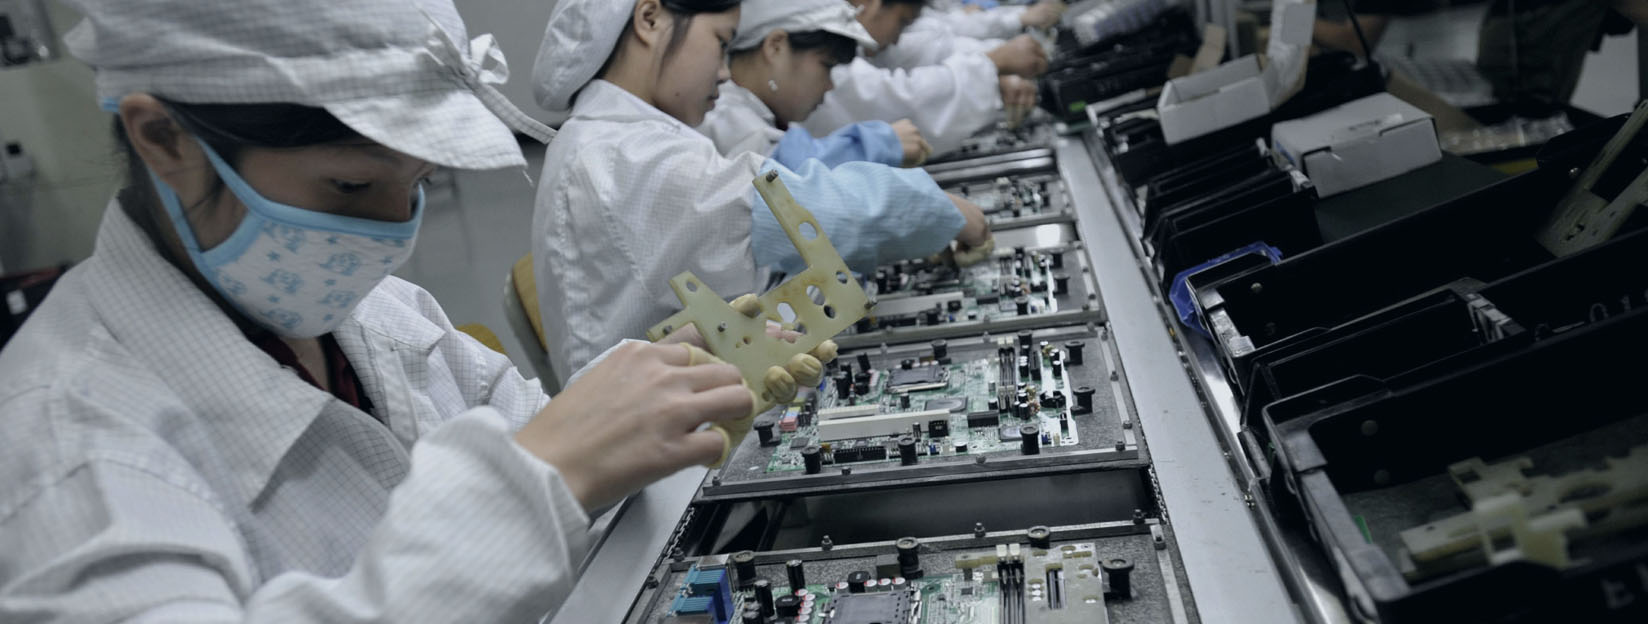 Taiwan's Electronic Component Exports Fall in First Three Quarters